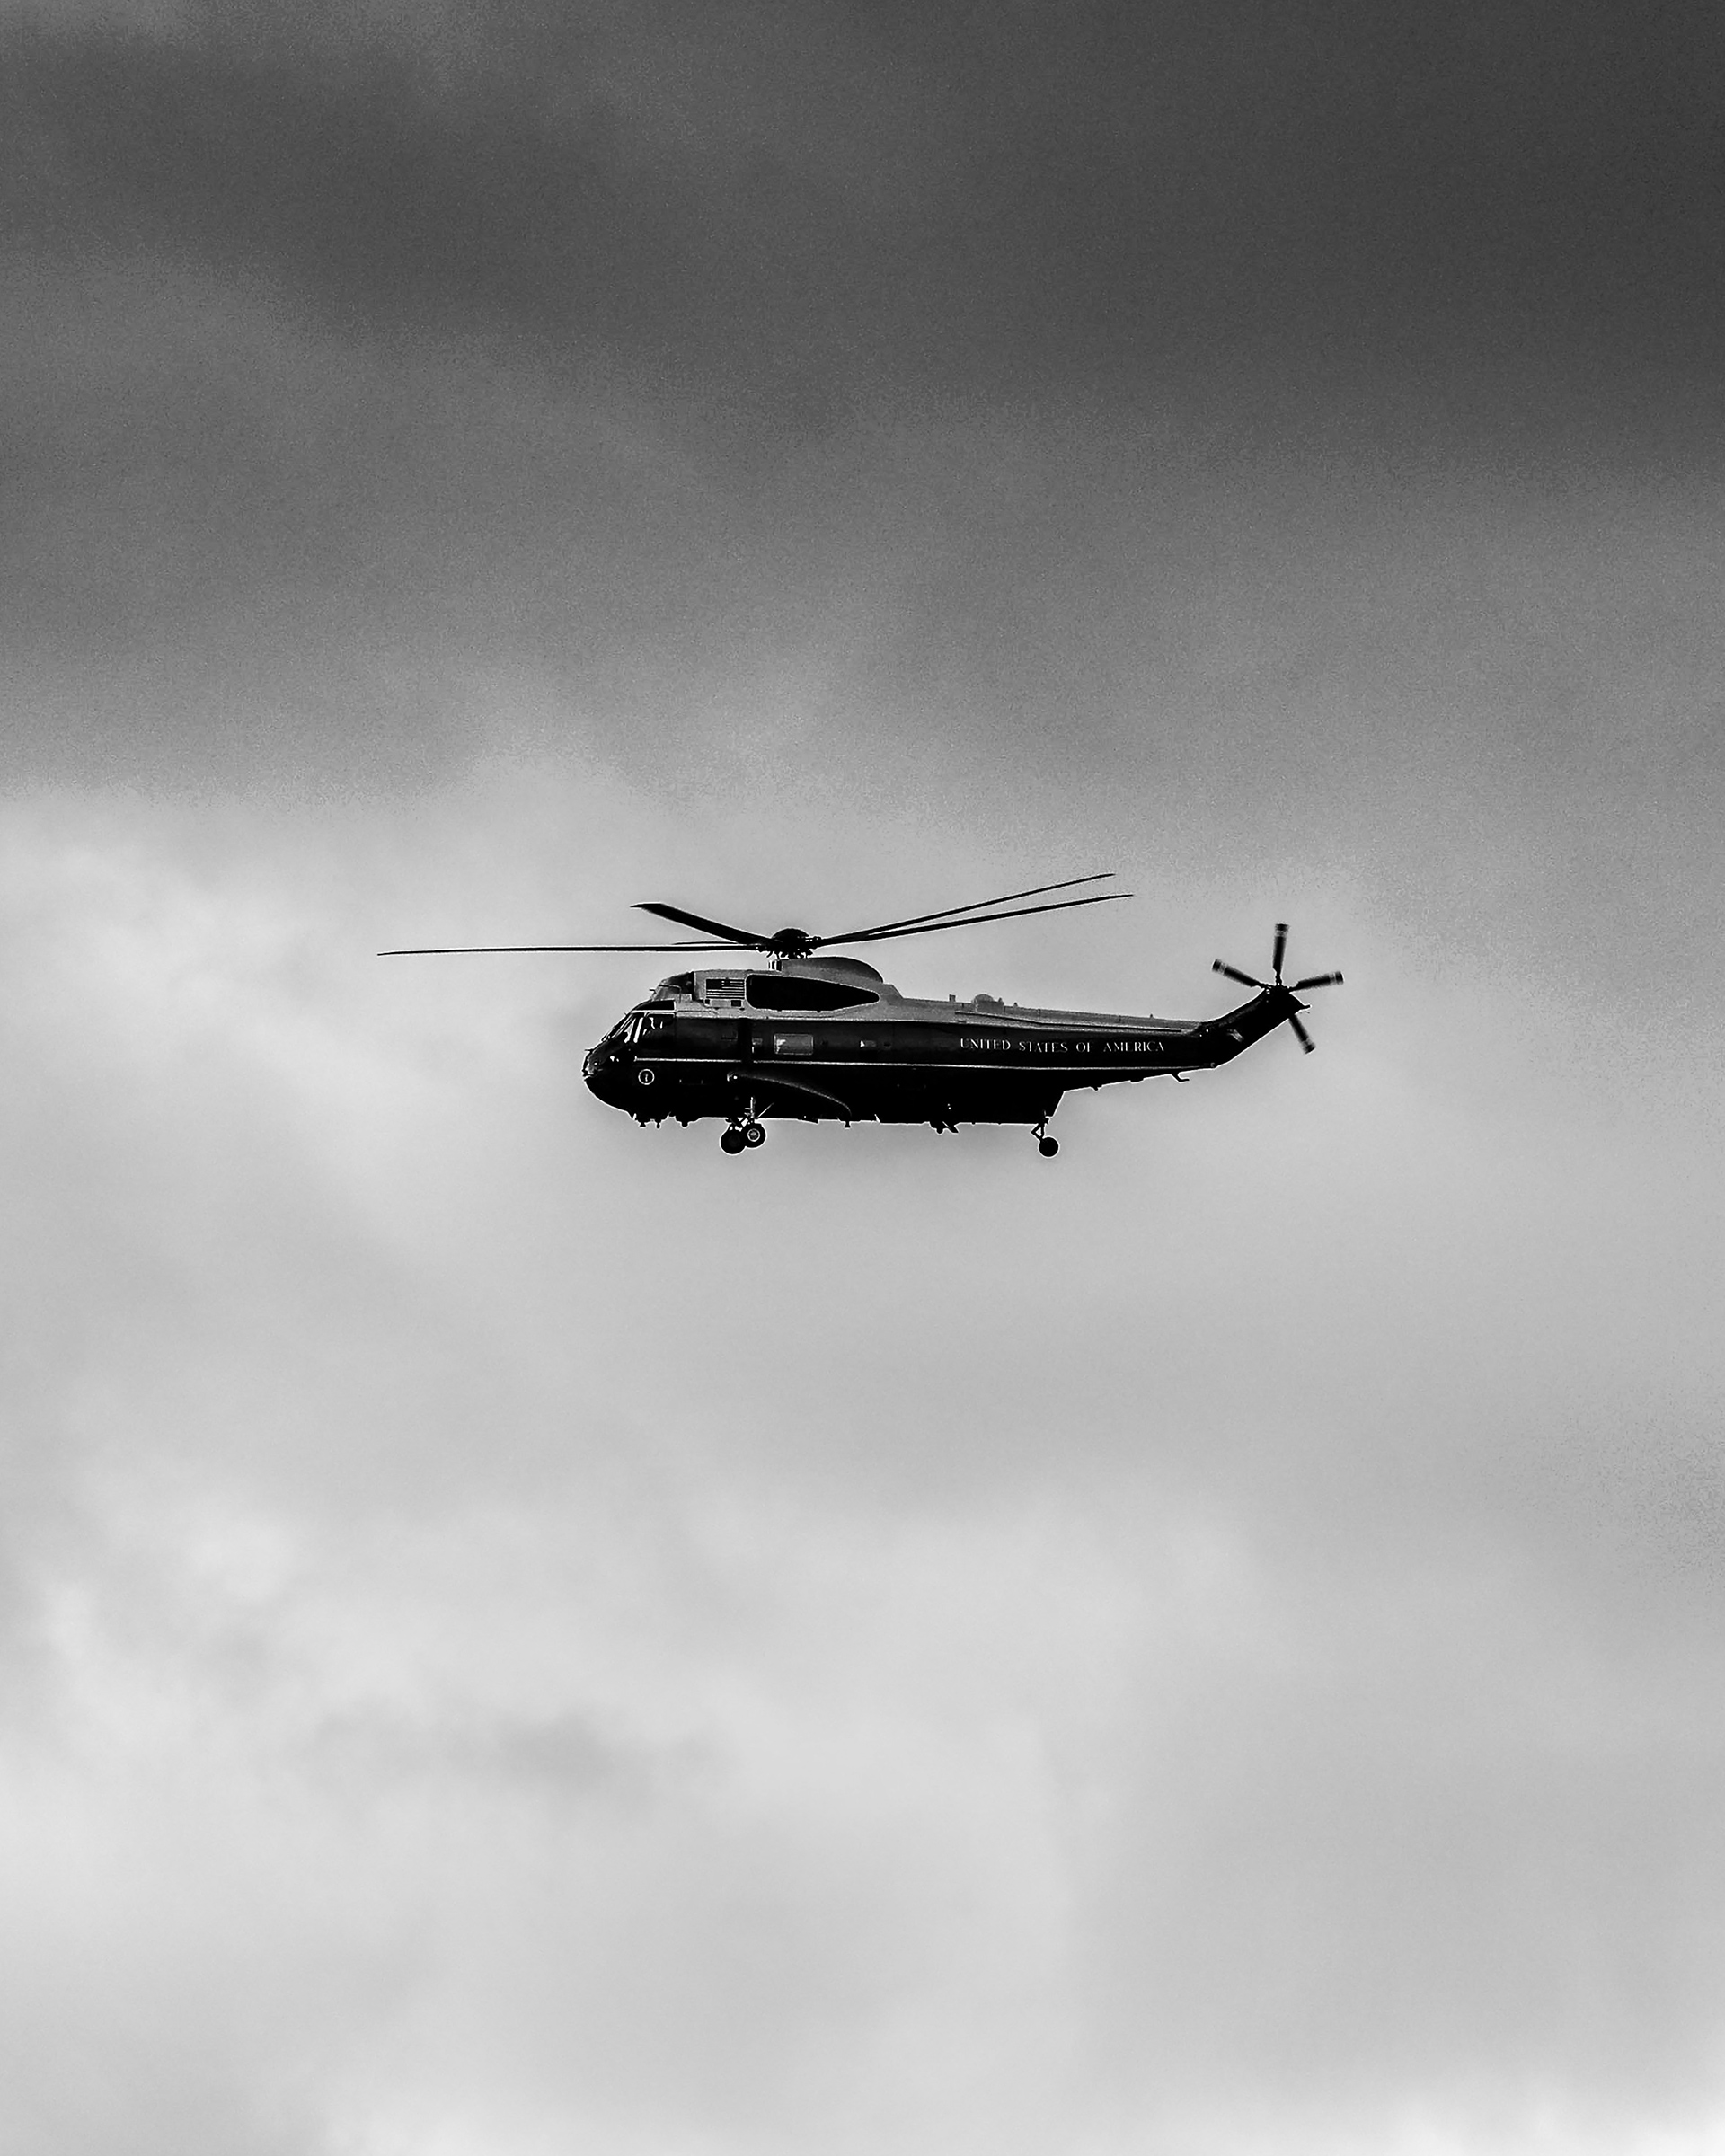 Marine One circles the National Mall carrying President Donald Trump as he departs the White House ahead of the inauguration.